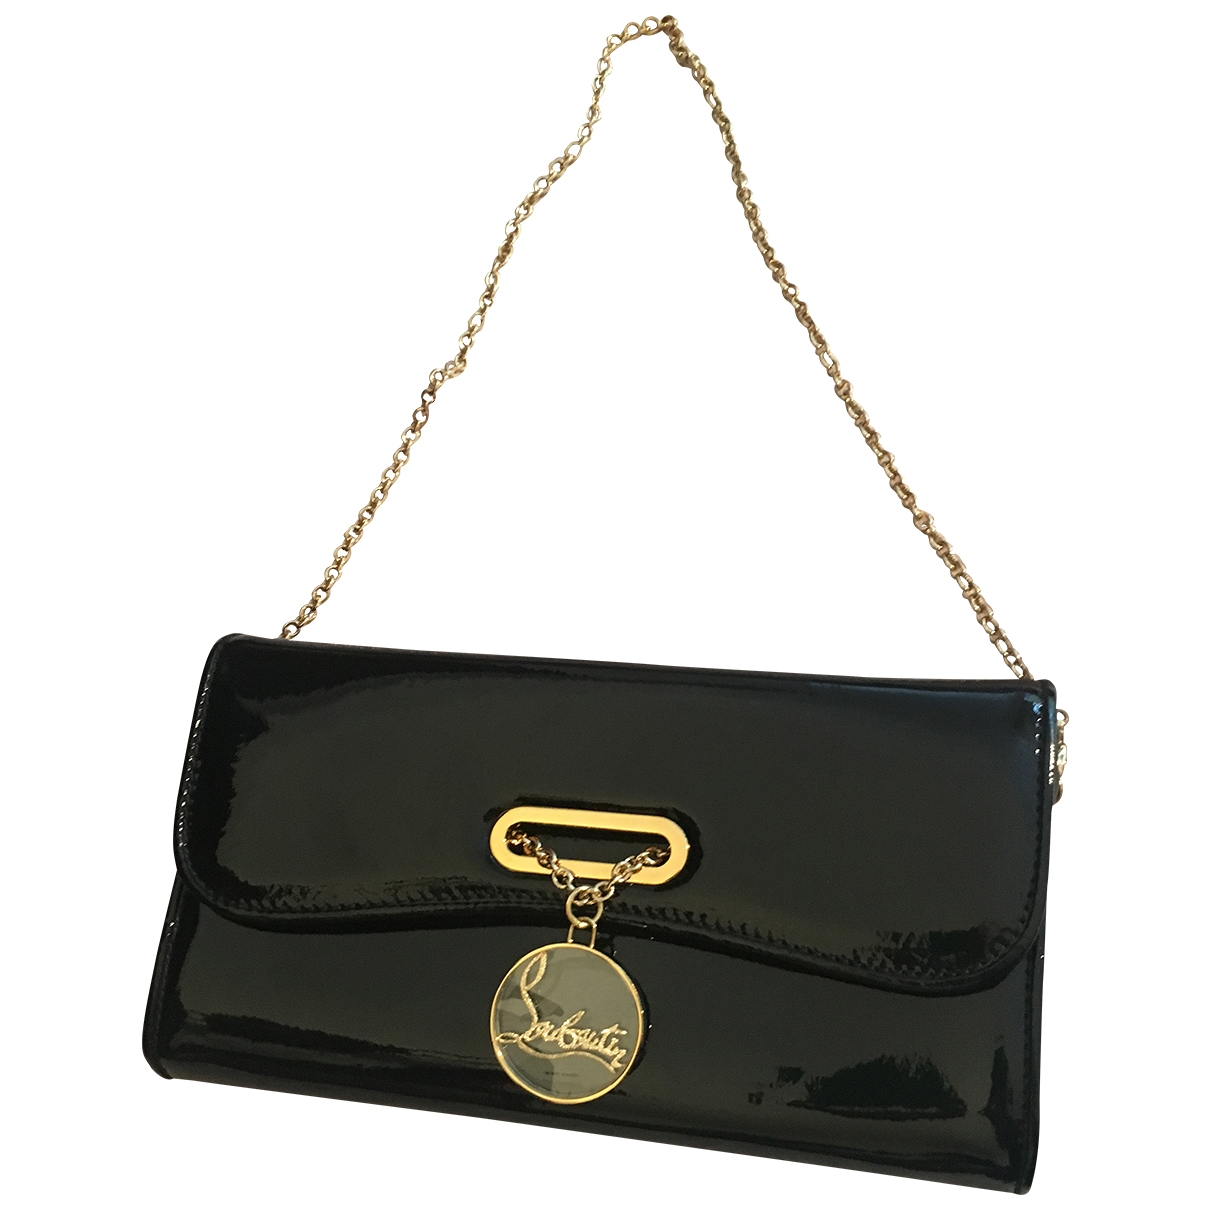 Christian Louboutin \N Clutch in  Schwarz Lackleder